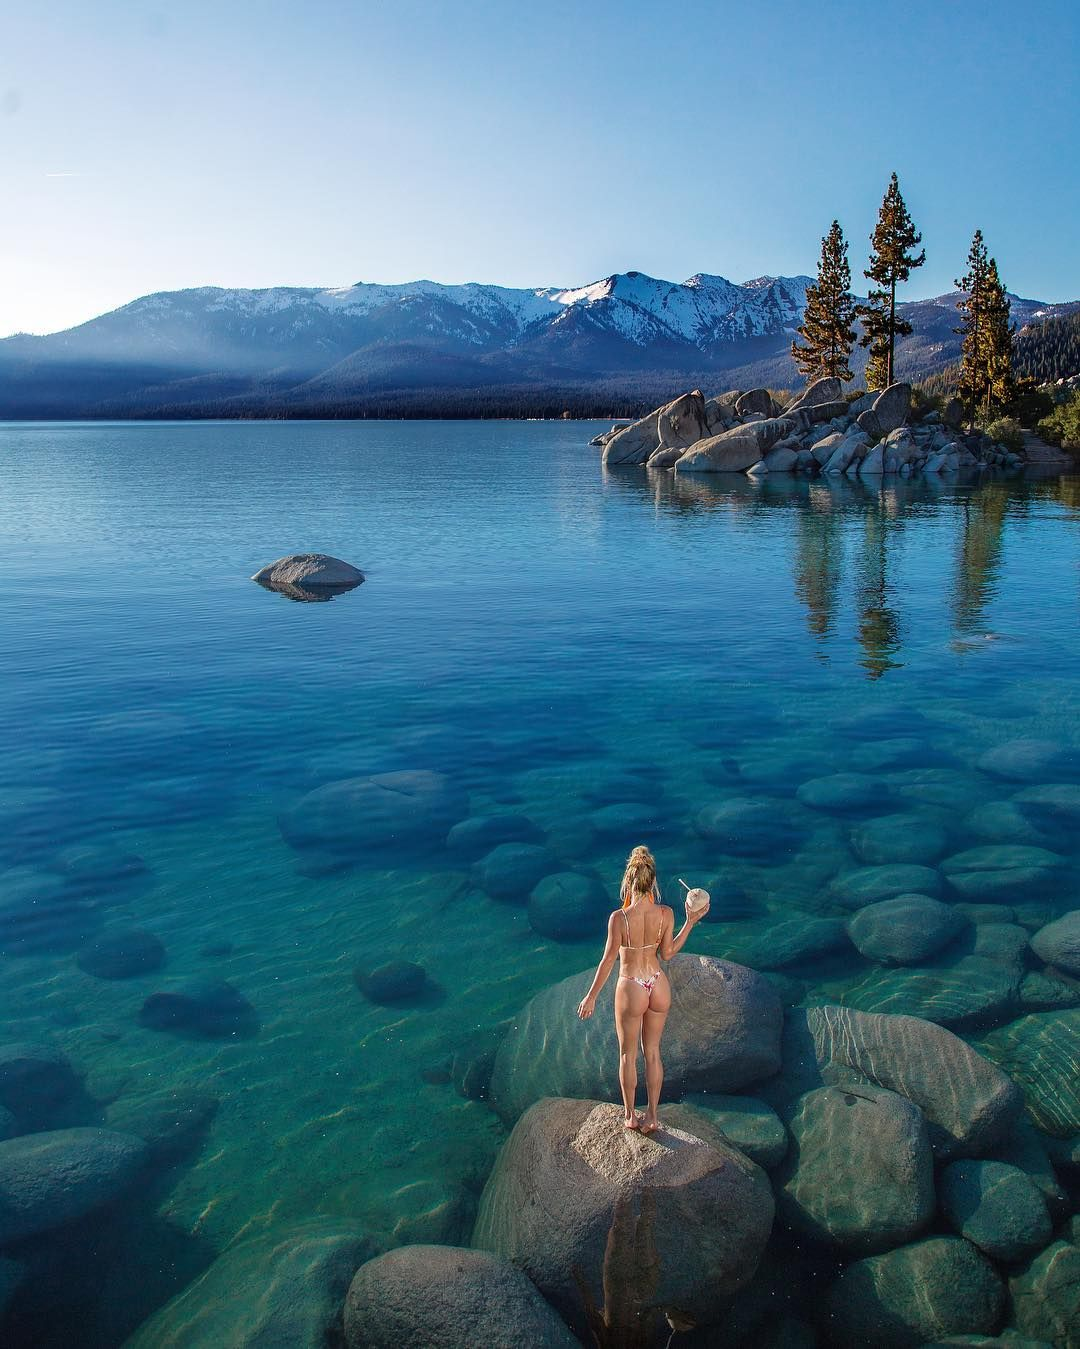 Lake tahoe sunset travel channel pinterest - Explore Mother Nature Photo And Video And More